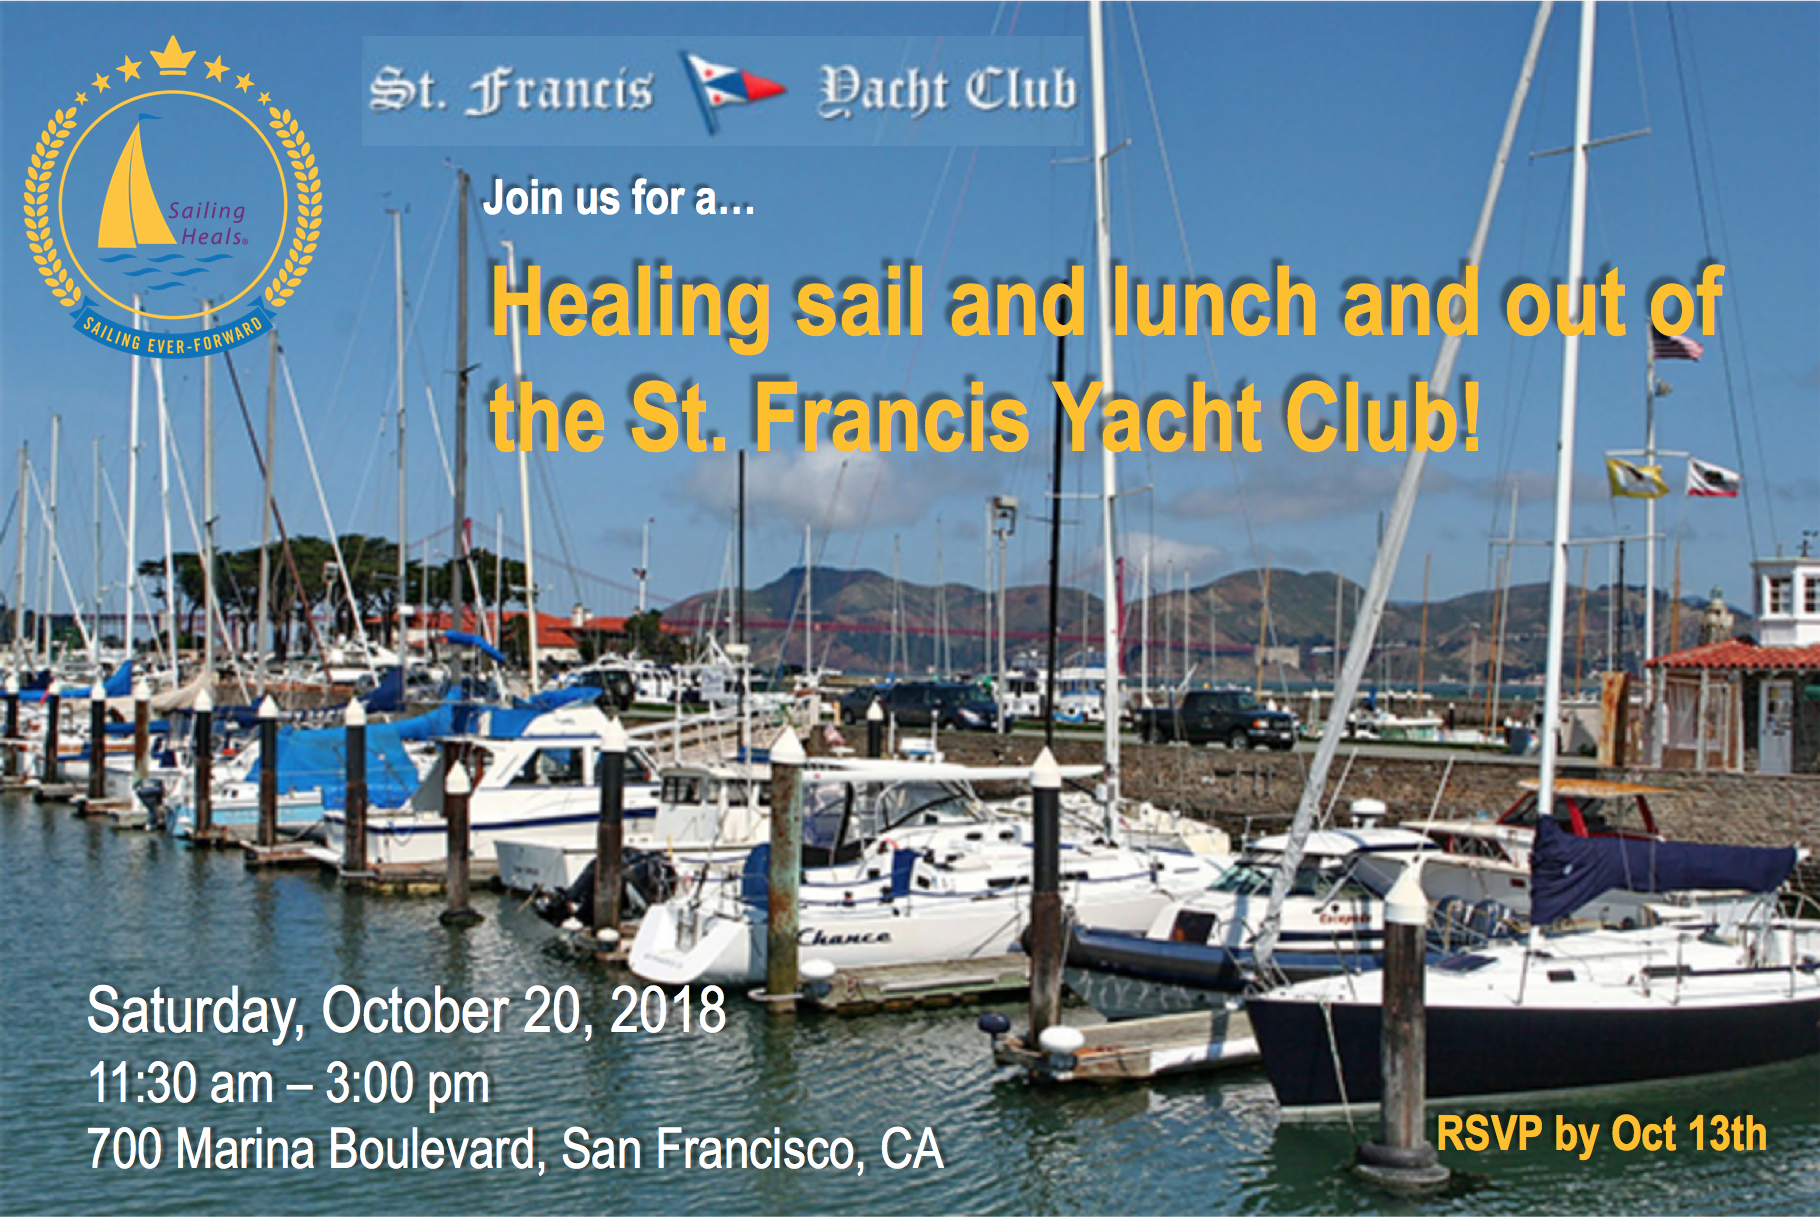 10/20/18 St. Francis Yacht Club lunch and healing sail